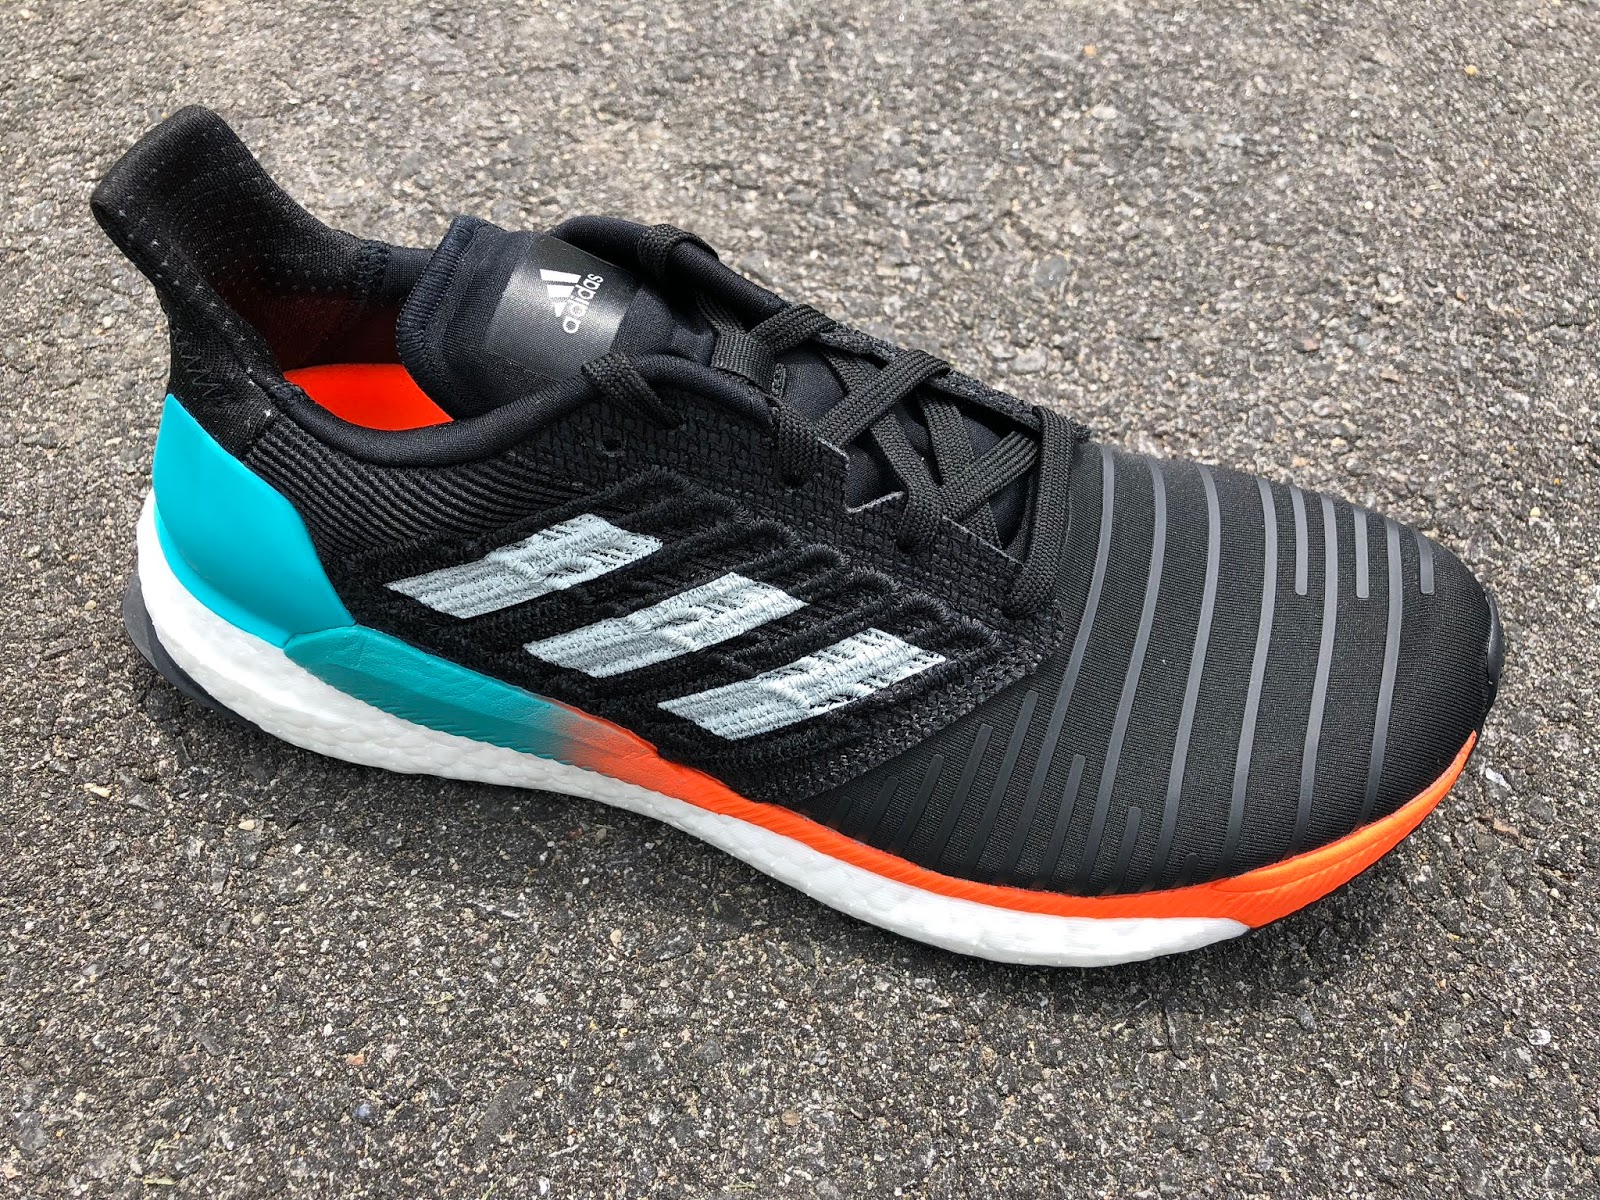 Road Trail Run  adidas Solar Boost Review Initial Review Boost  Splashy Tropical   231a06